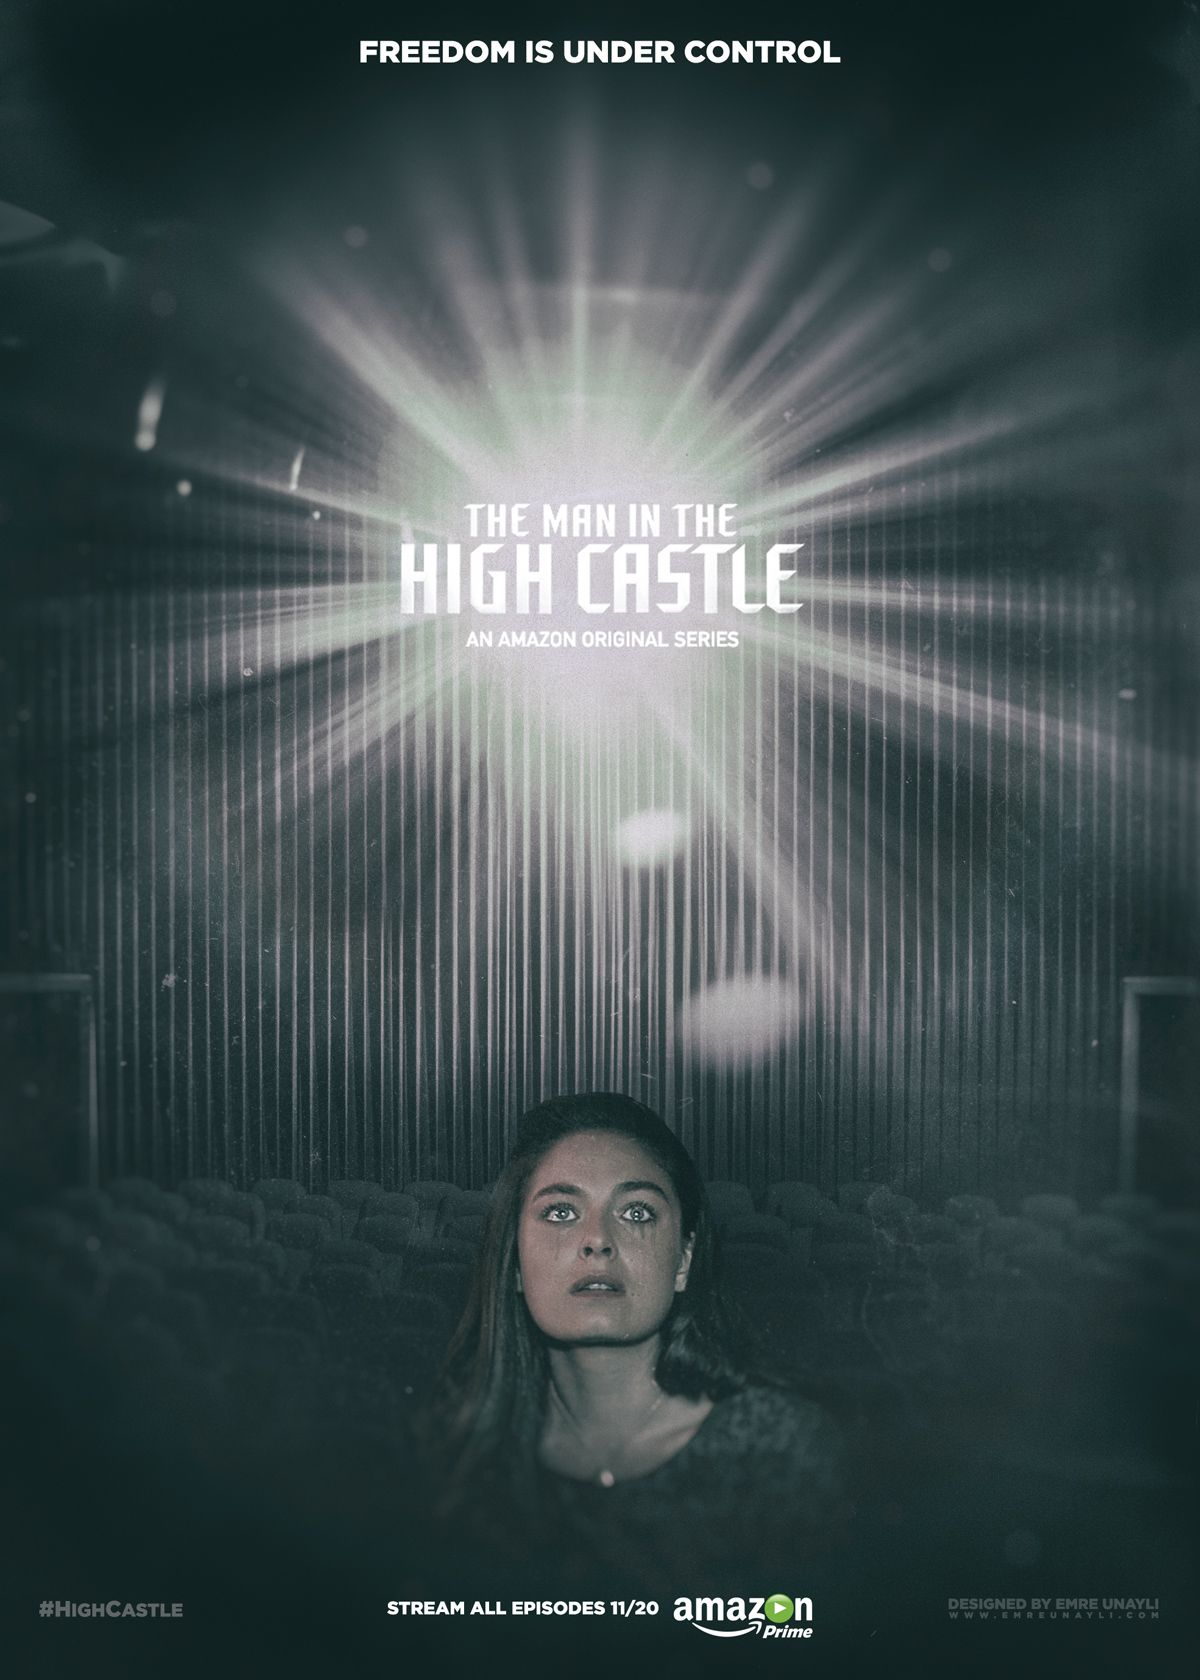 The Man in the High Castle by Emre Unayli